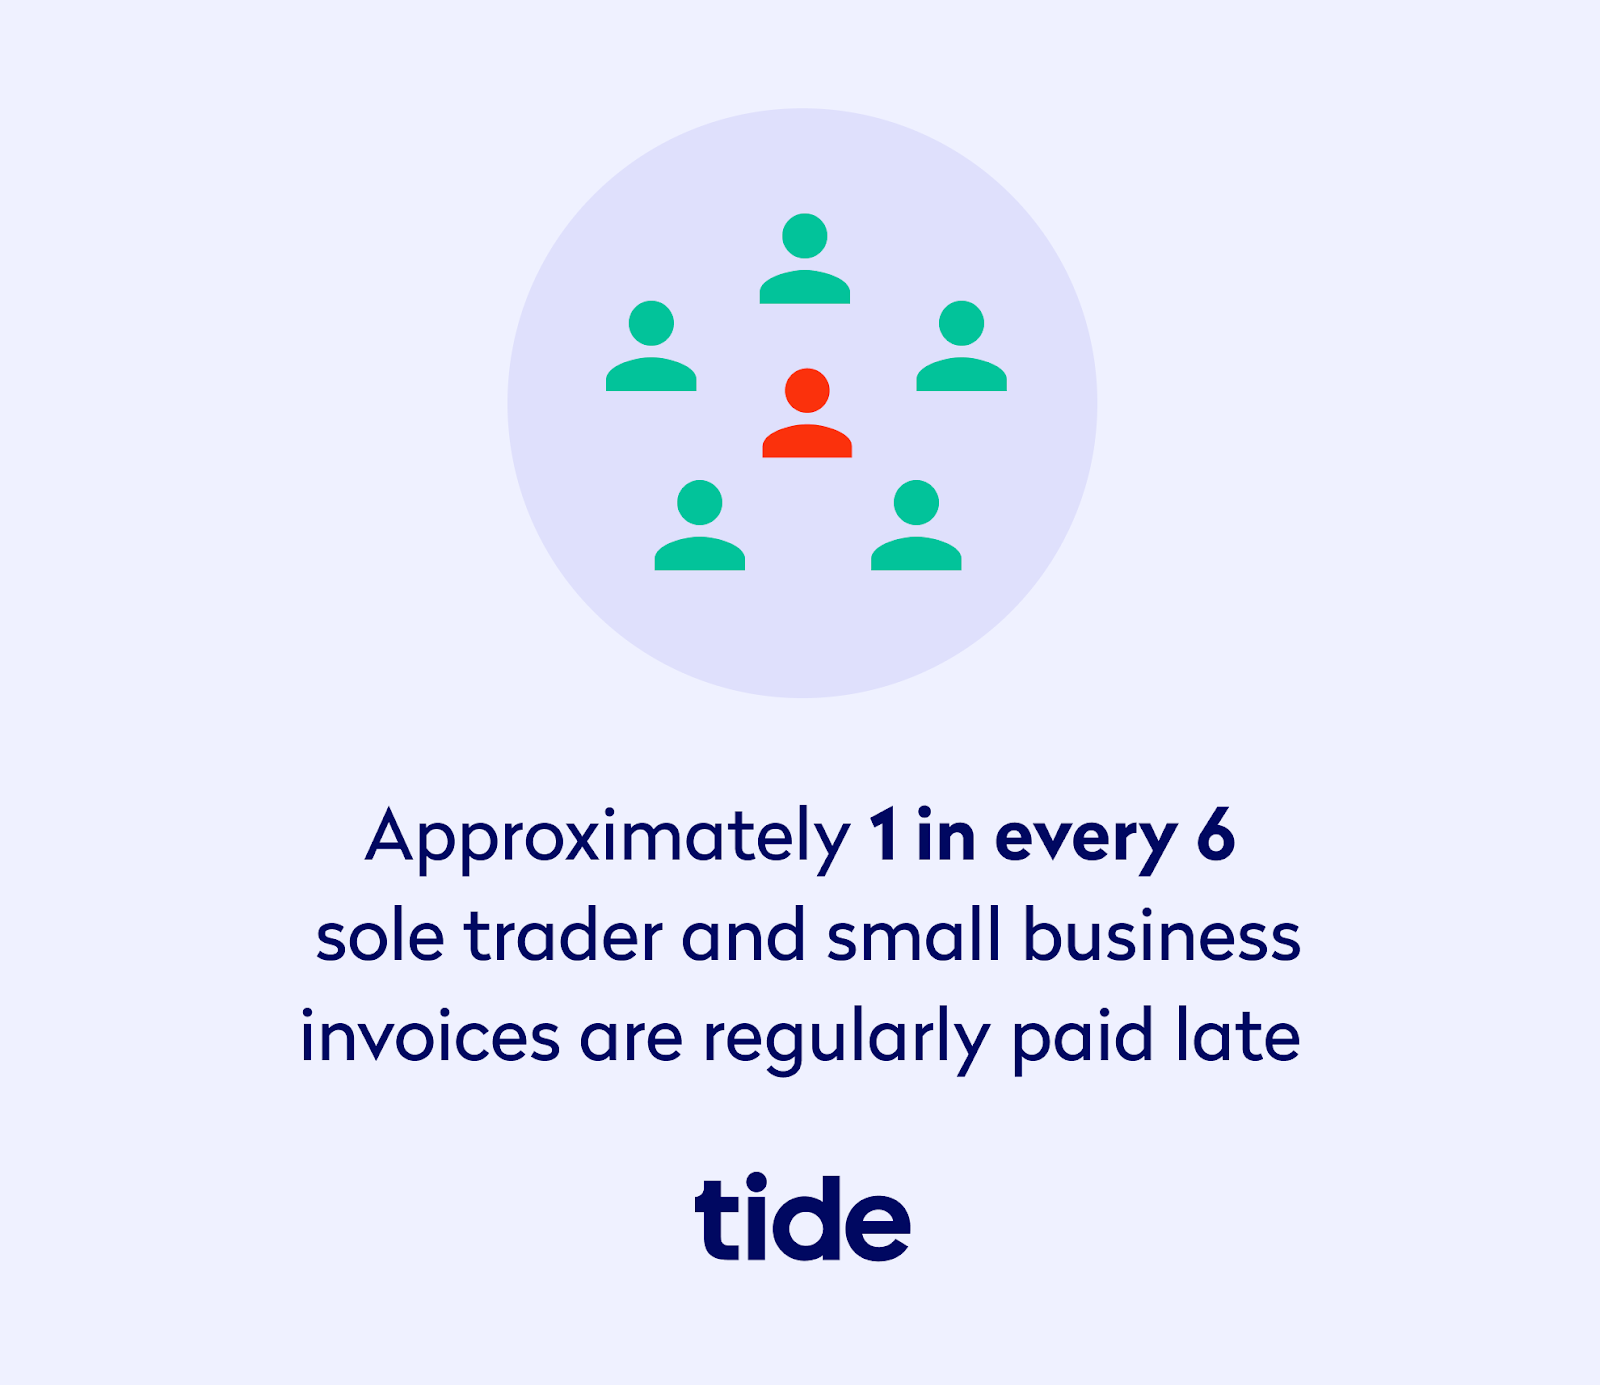 Tide study invoicing and payments